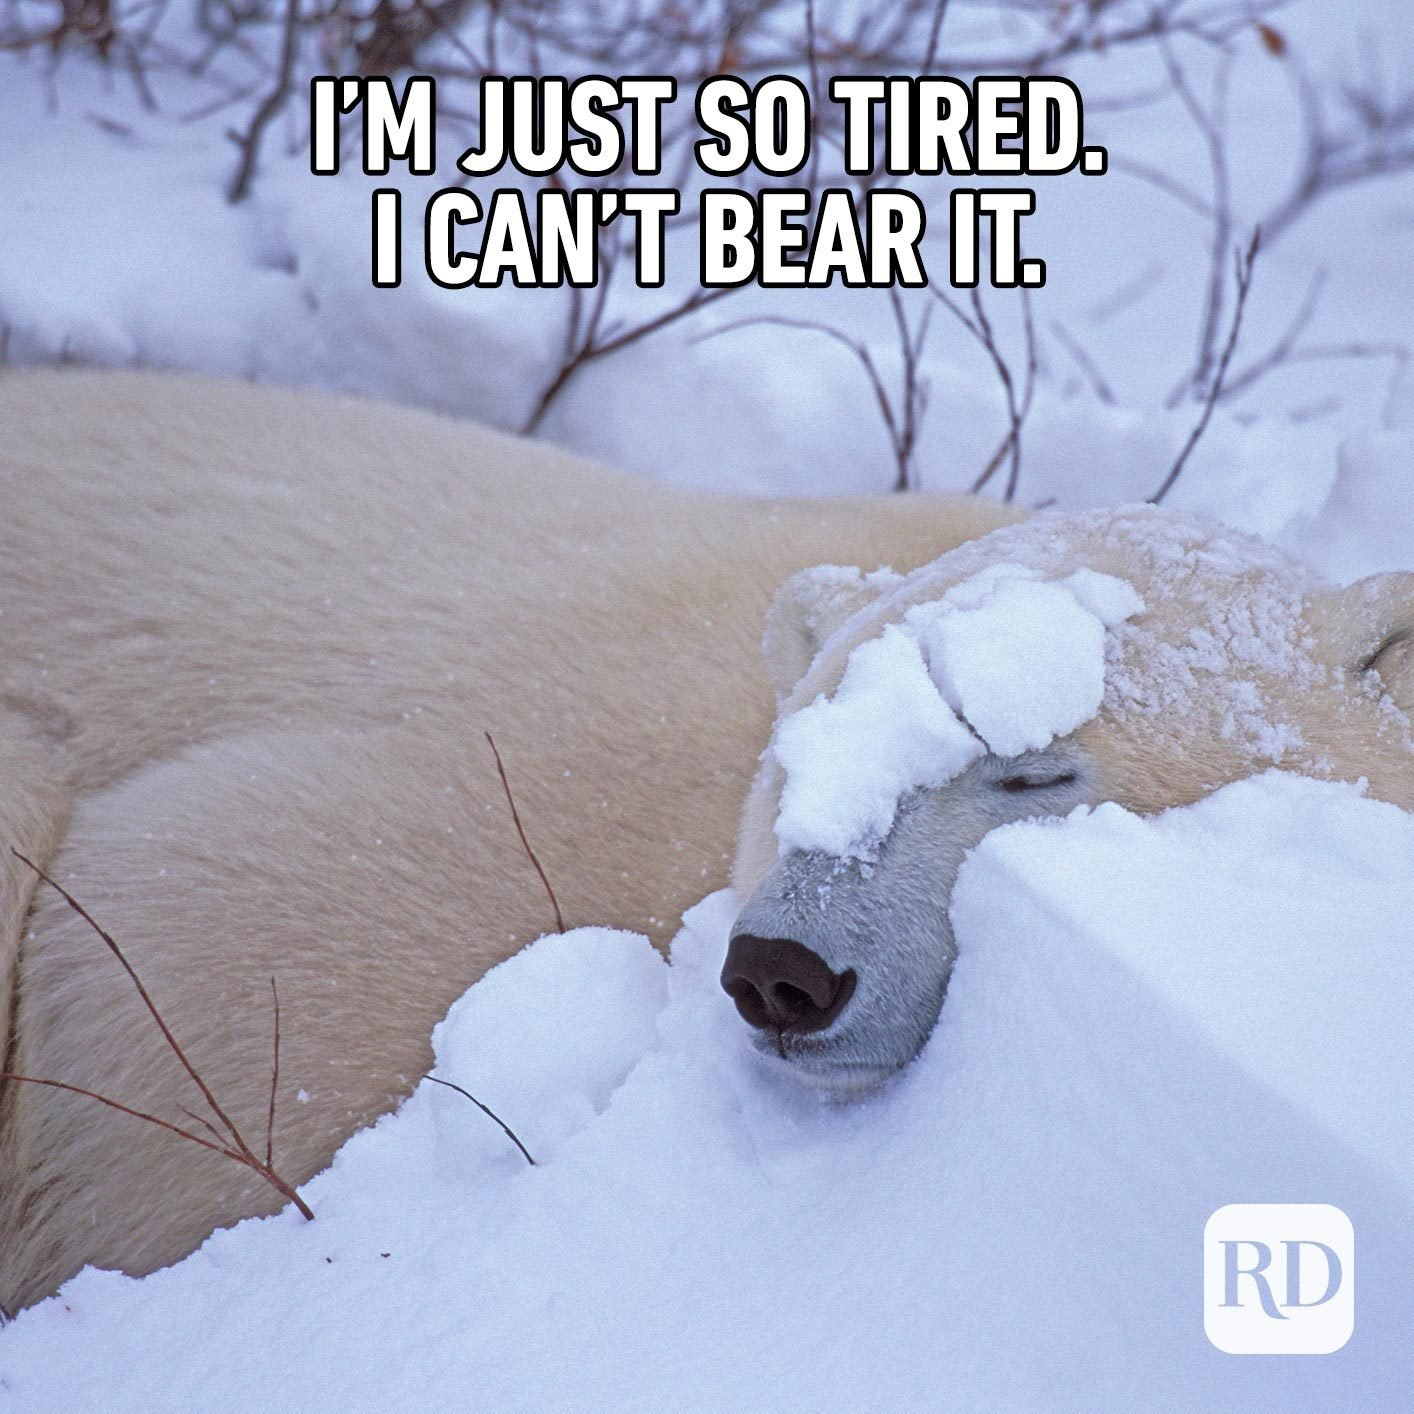 Polar bear in snow. Meme text: I'm just so tired. I can't bear it.